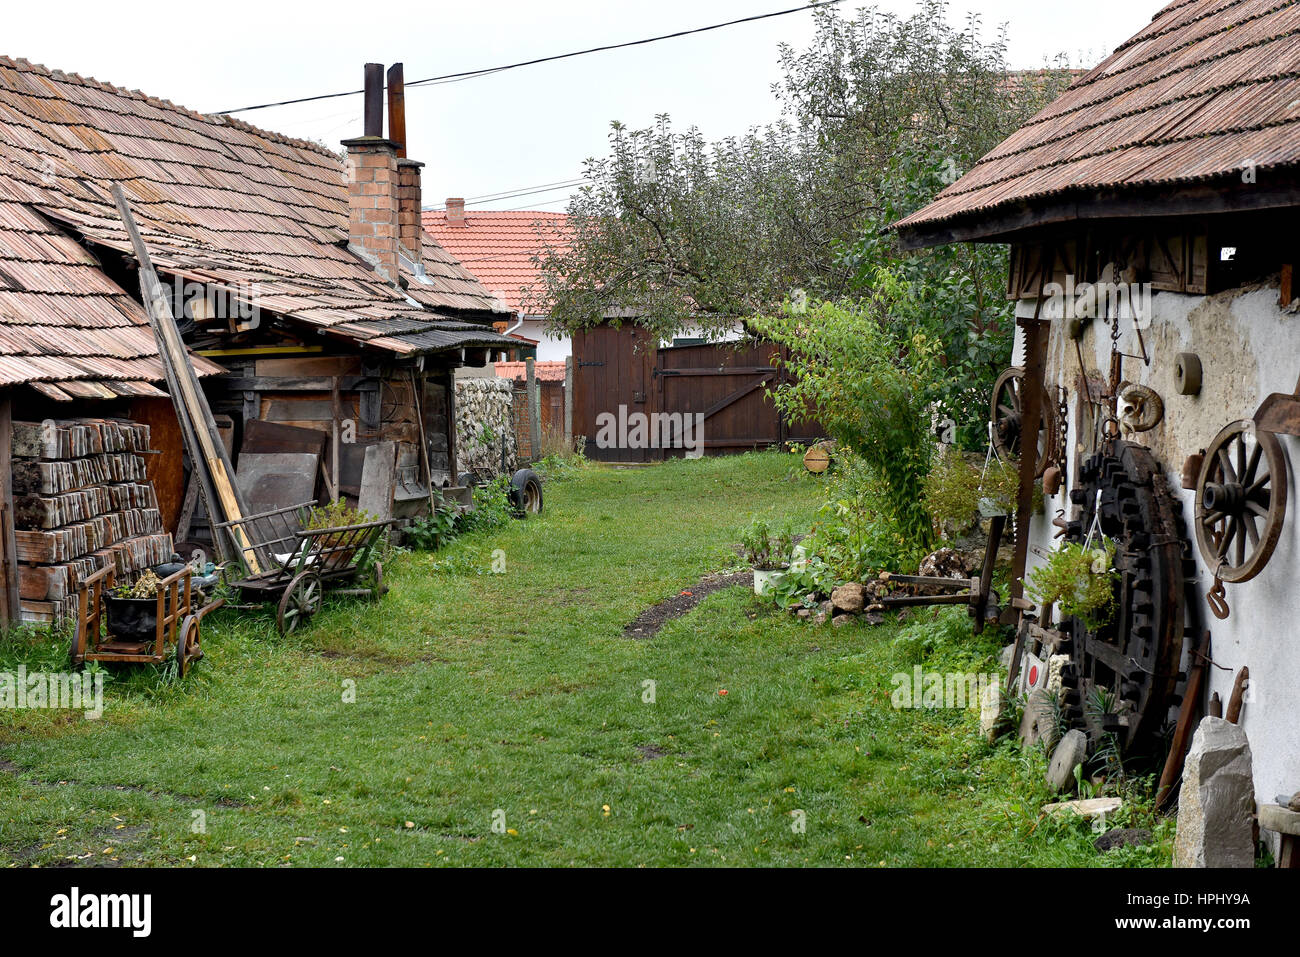 Rural back yard with decoration of vintage objects in